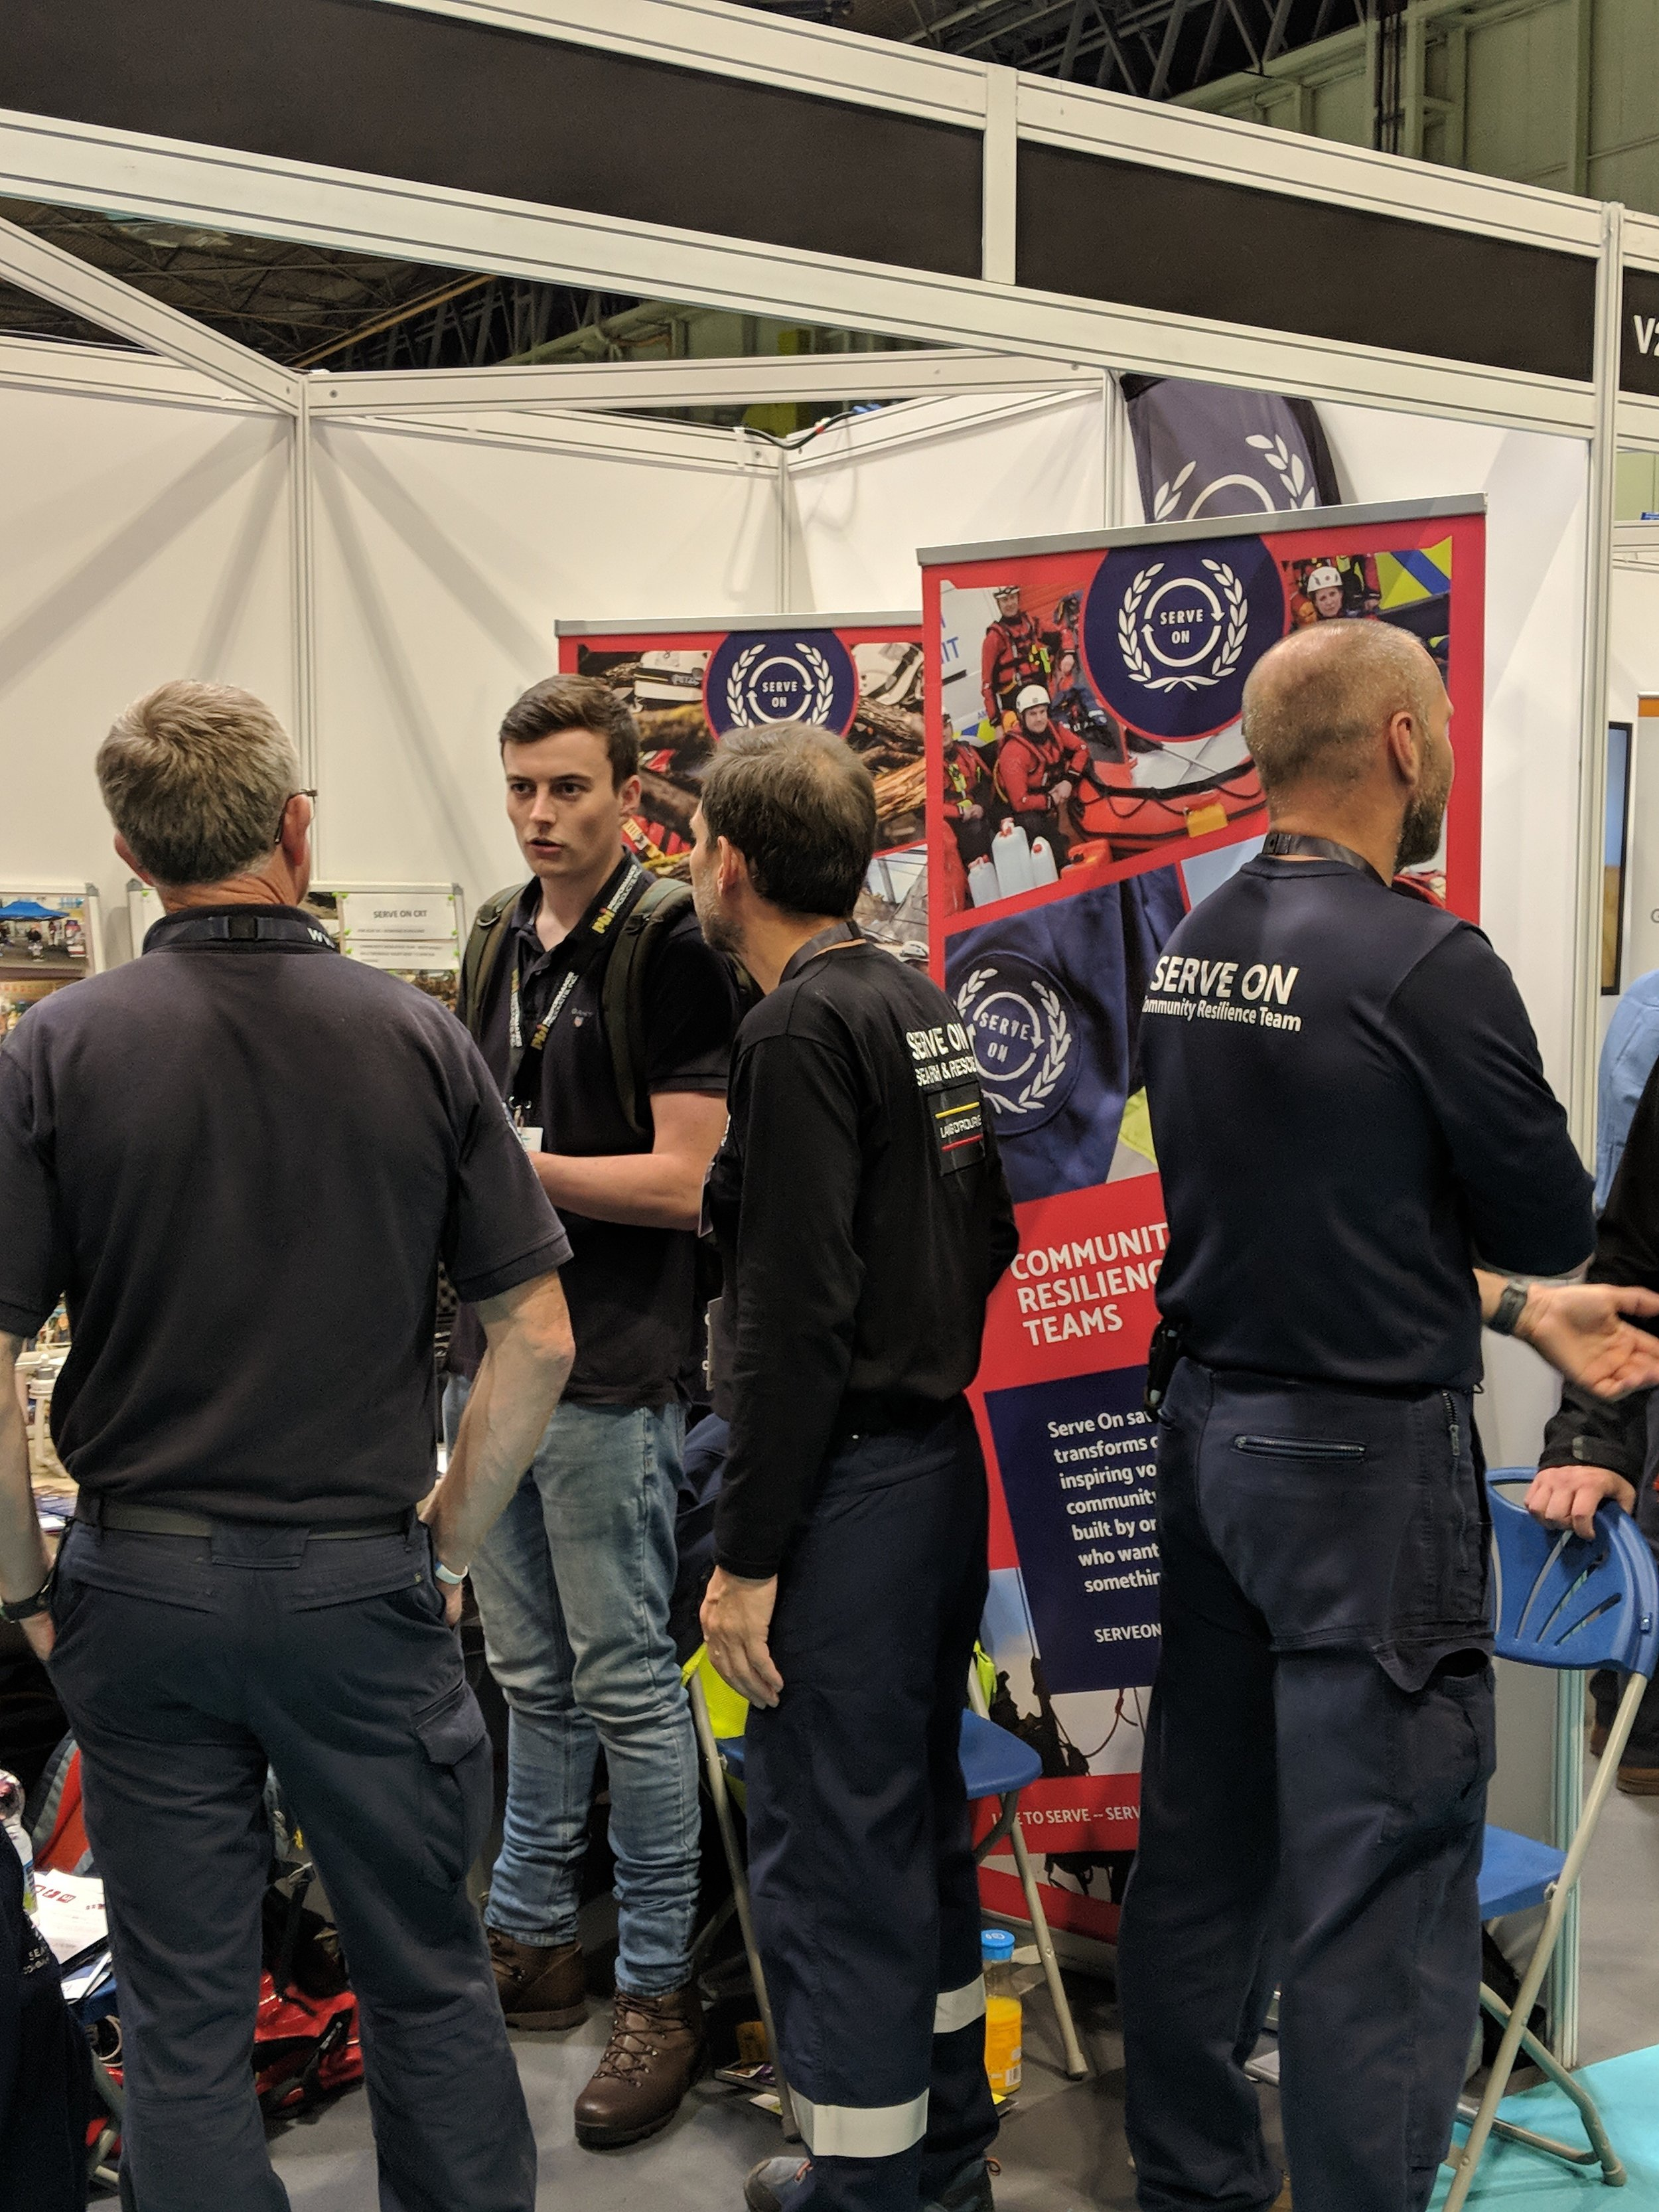 Serve On volunteers manning the stand at this year's @emergencyukshow at Birmingham NEC.